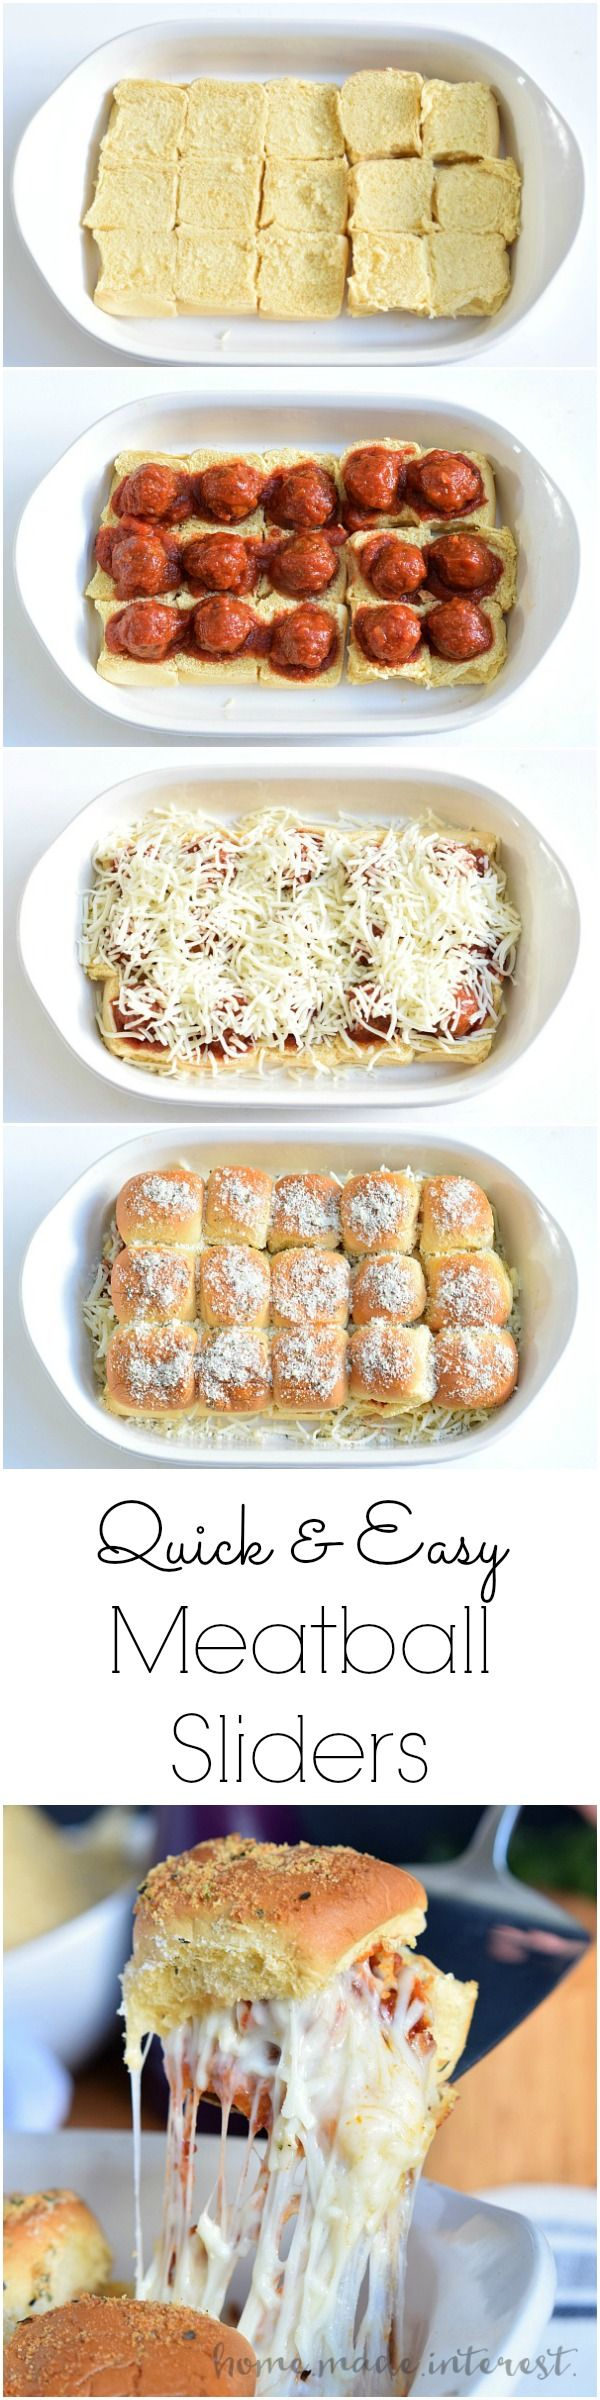 Great recipe for game night entertaining.